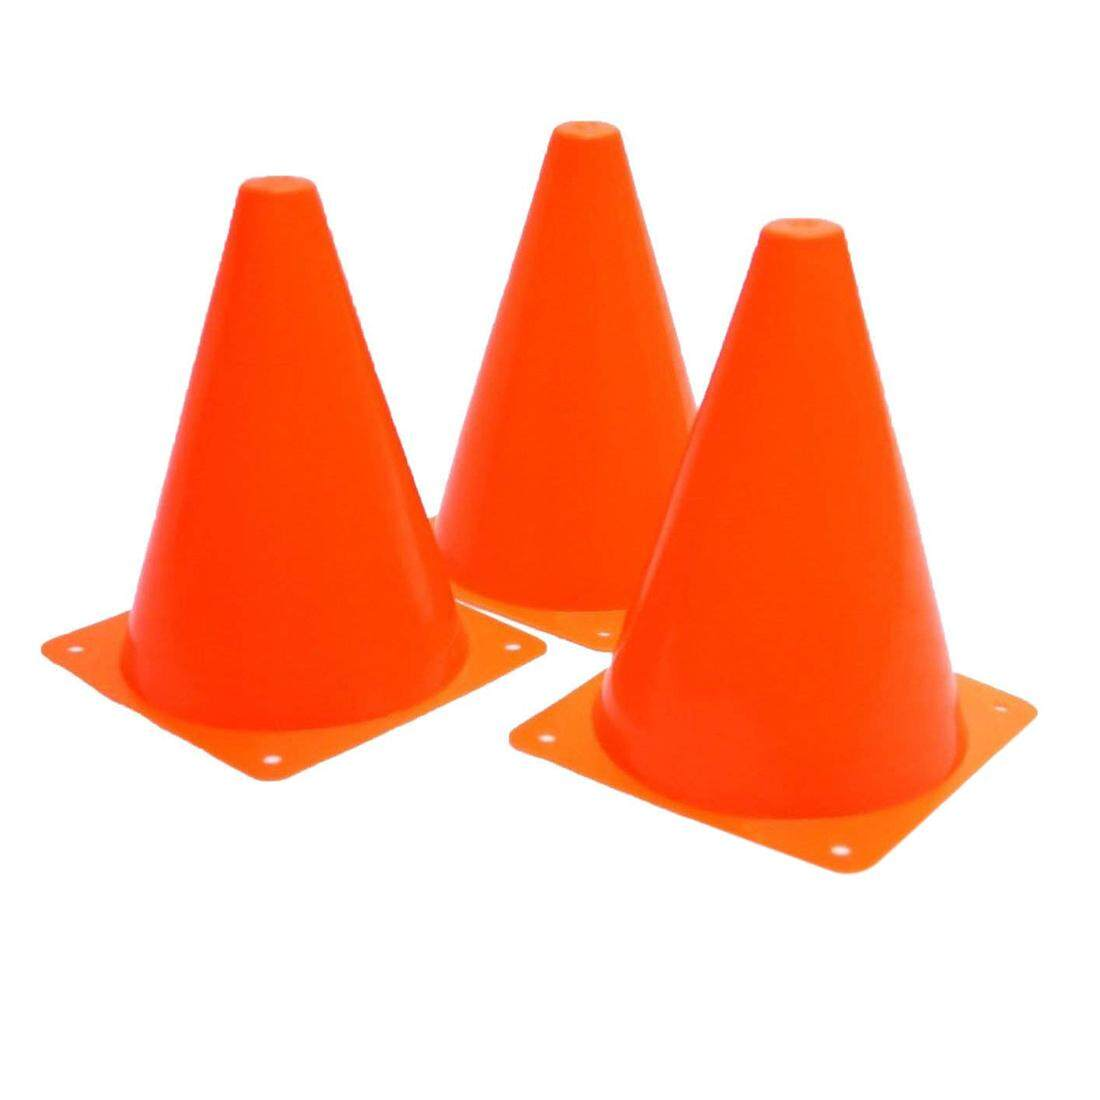 Plastic Traffic Cones - 12 Pack Of Multipurpose Construction Theme Party Sports Activity Cones For Kids Outdoor And Indoor Gaming And Festive Events By Ralleya.